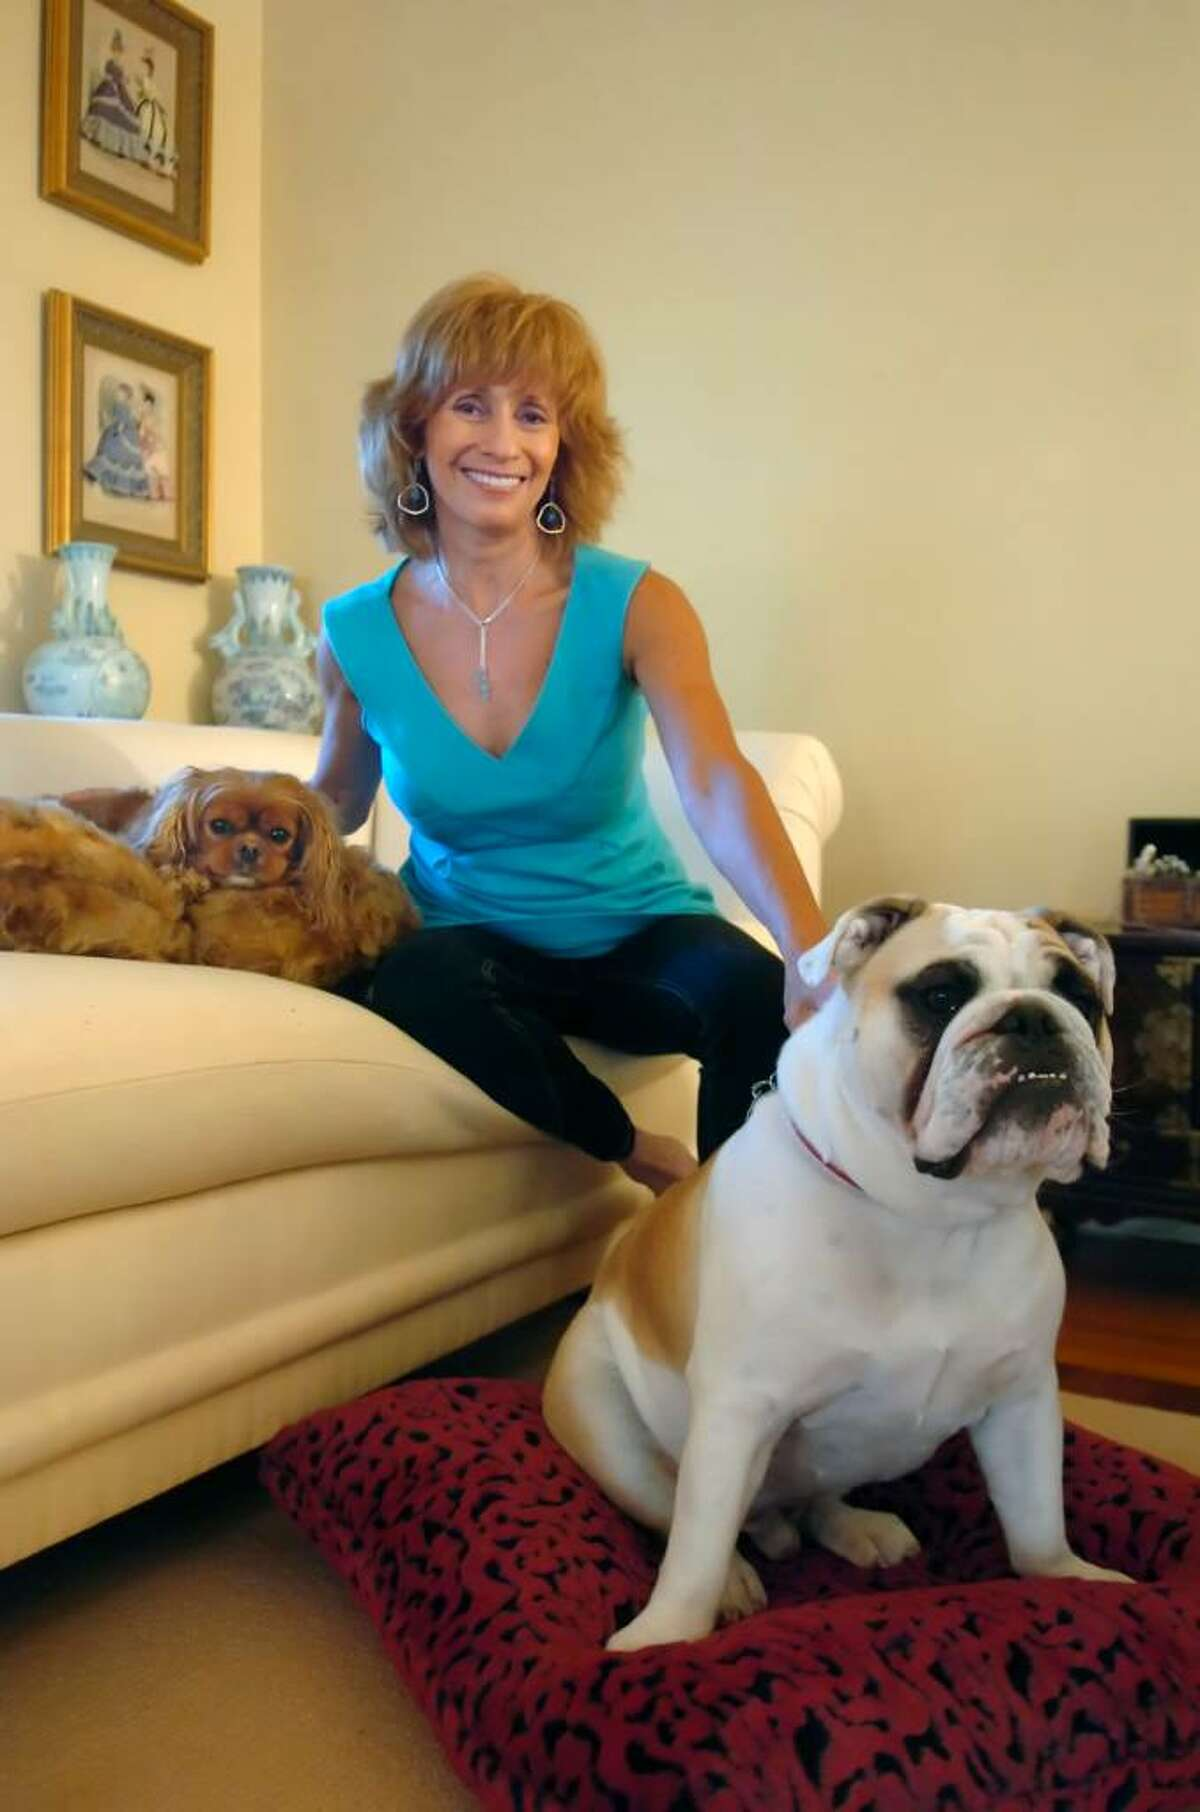 Elaine Doran in her home studio where she creates Puppy Hugger & Kitty Cats Too dog and cat beds on Tuesday, June 8, 2010. Chelsea, a Cavalier King Charles spaniel, 6, left and Winston, 1, English Bull Dog enjoy the beds.